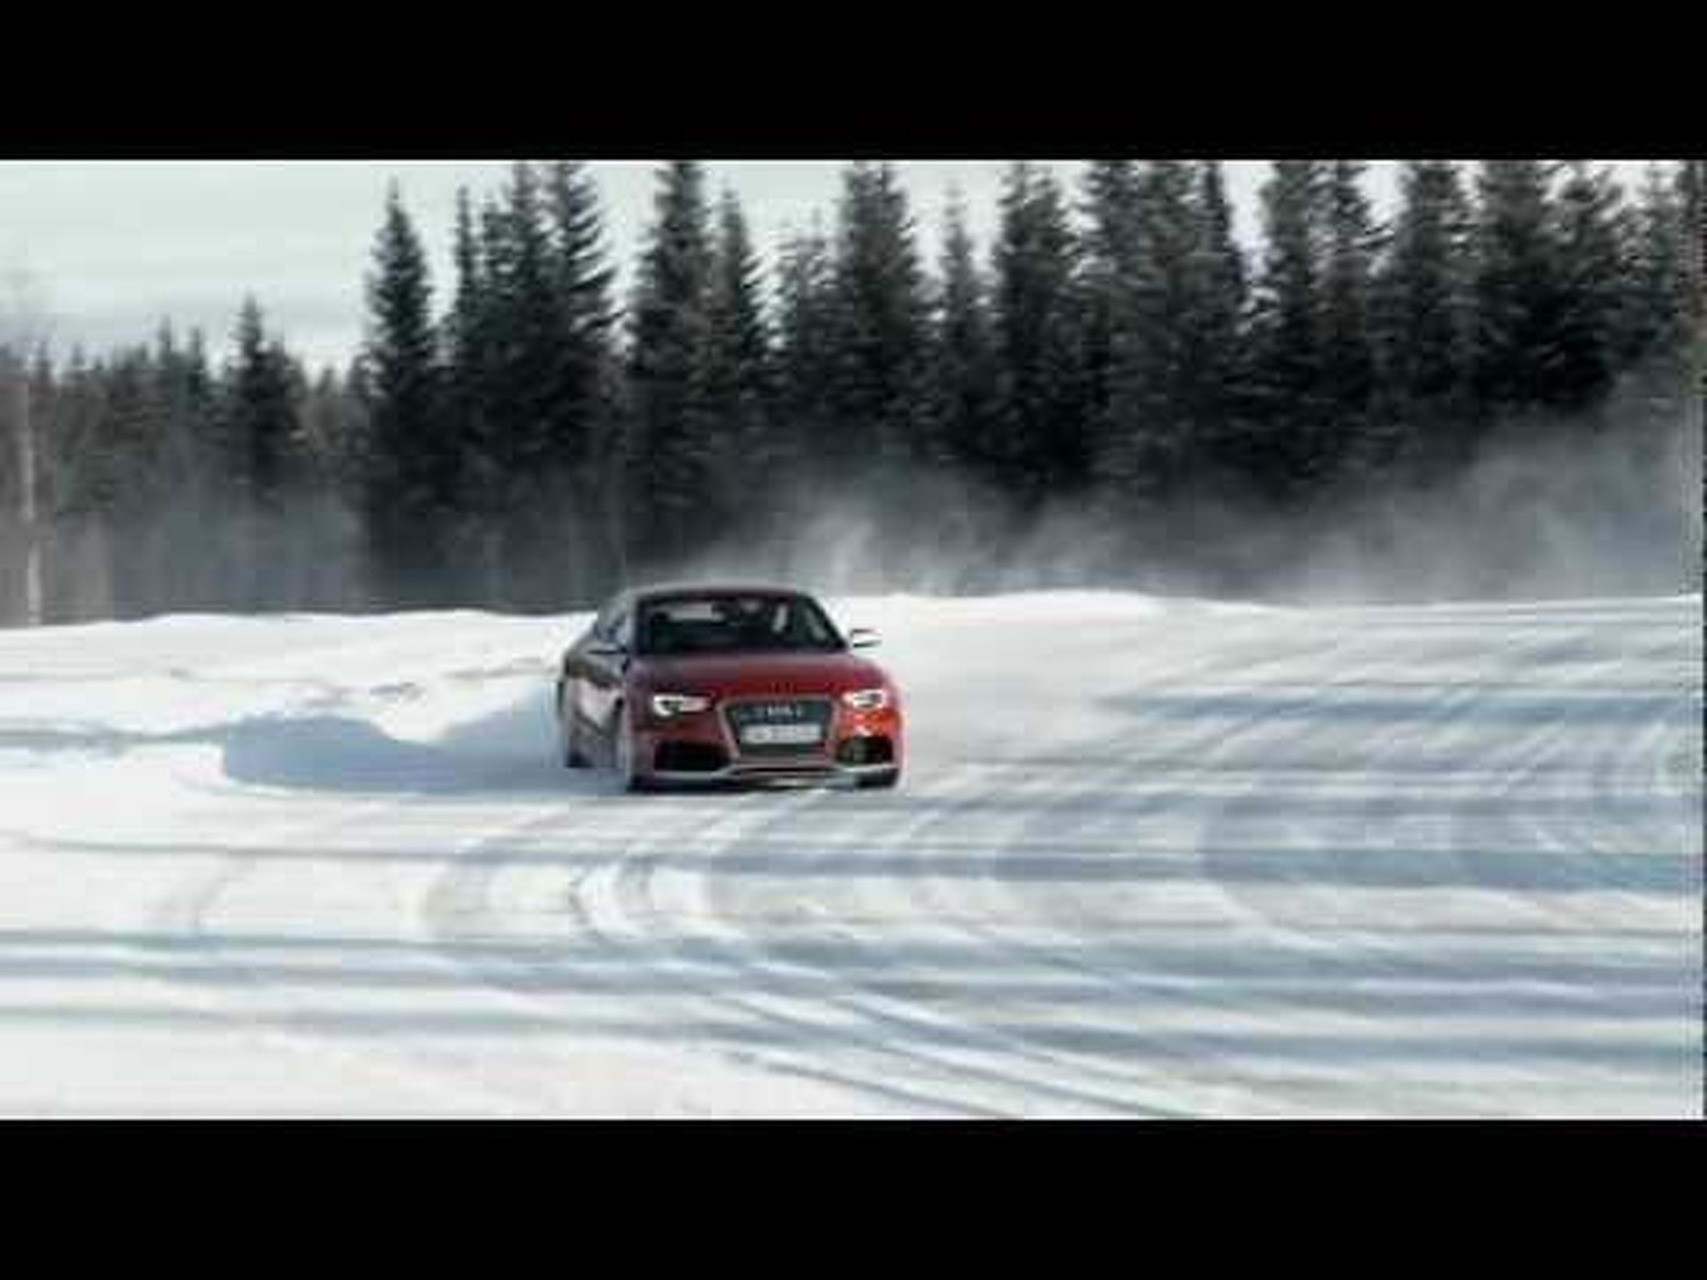 2012 Audi RS 5 Snow Drifting